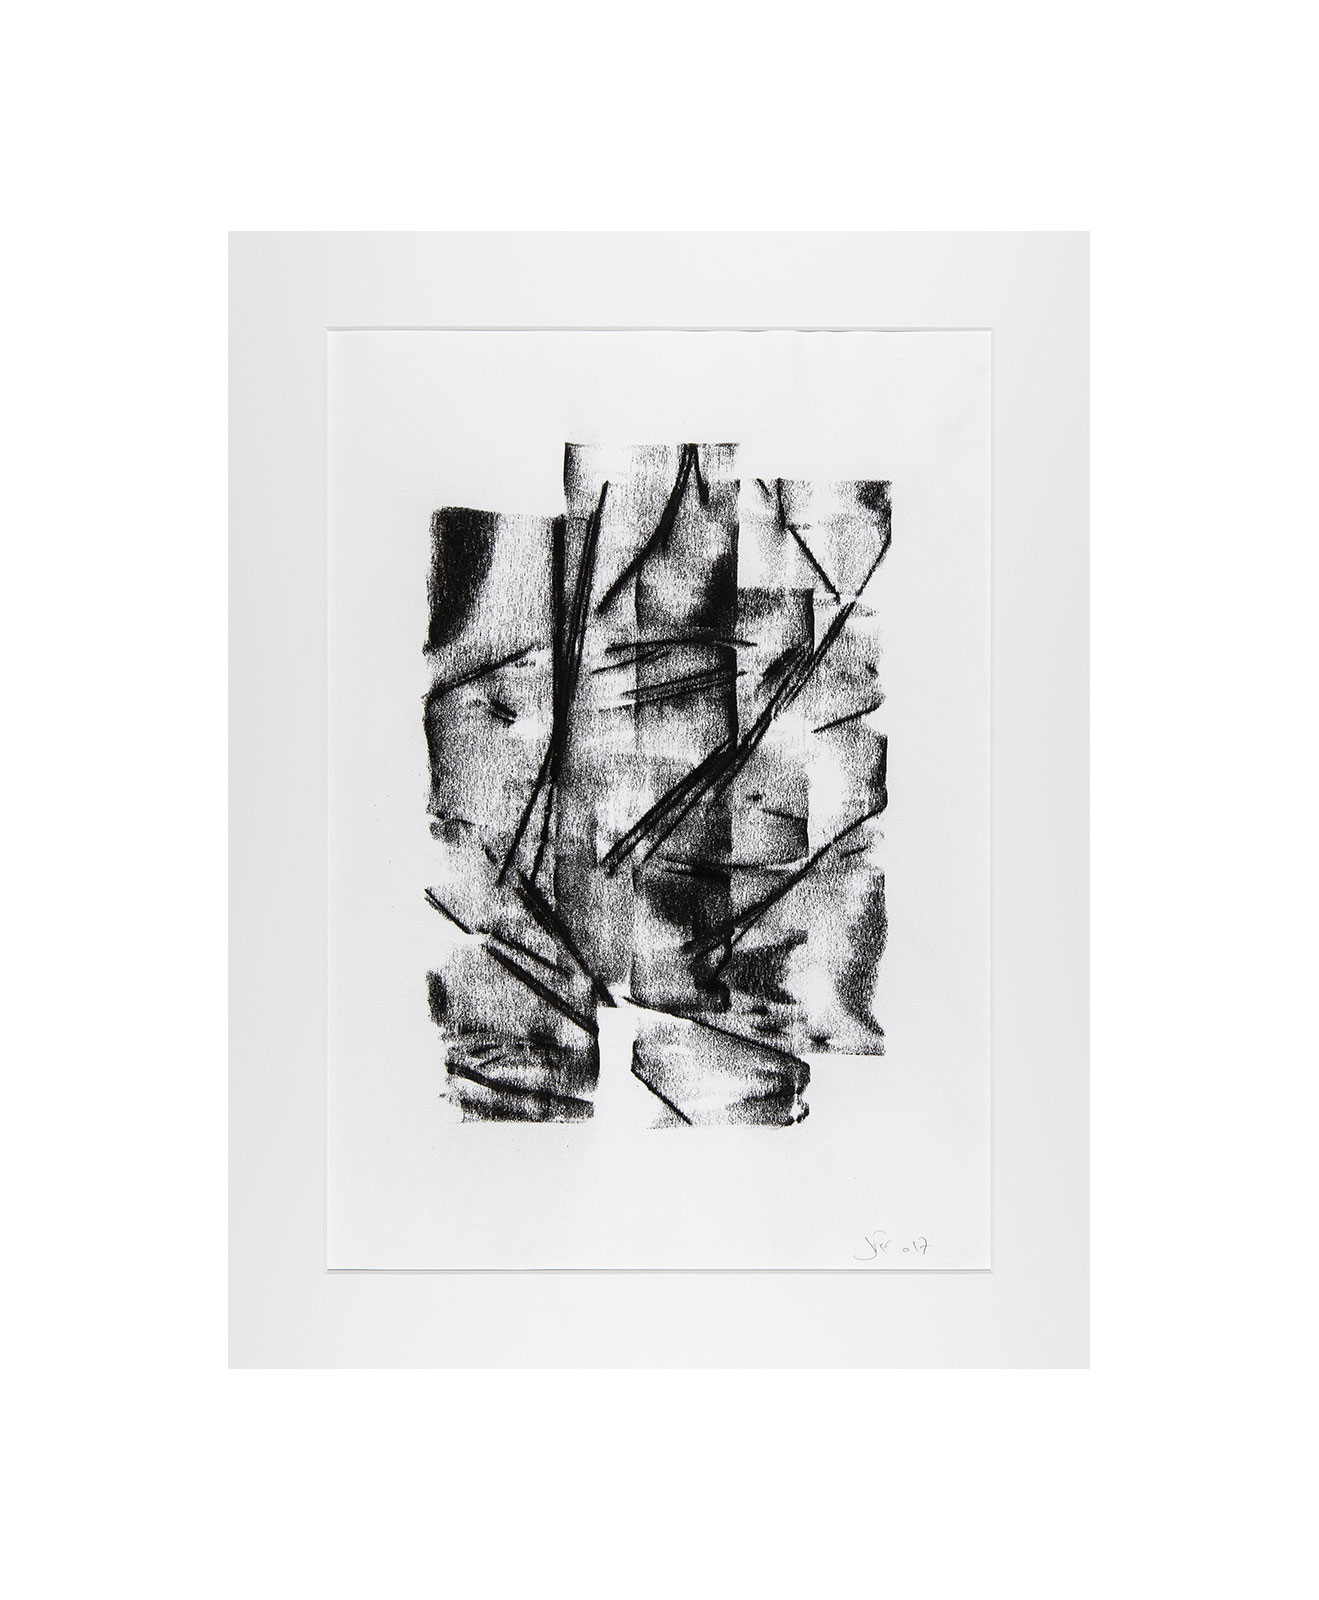 Cha 1.13, Charcoal on paper, black and white artwork, drawing, jf escande, contemporary art